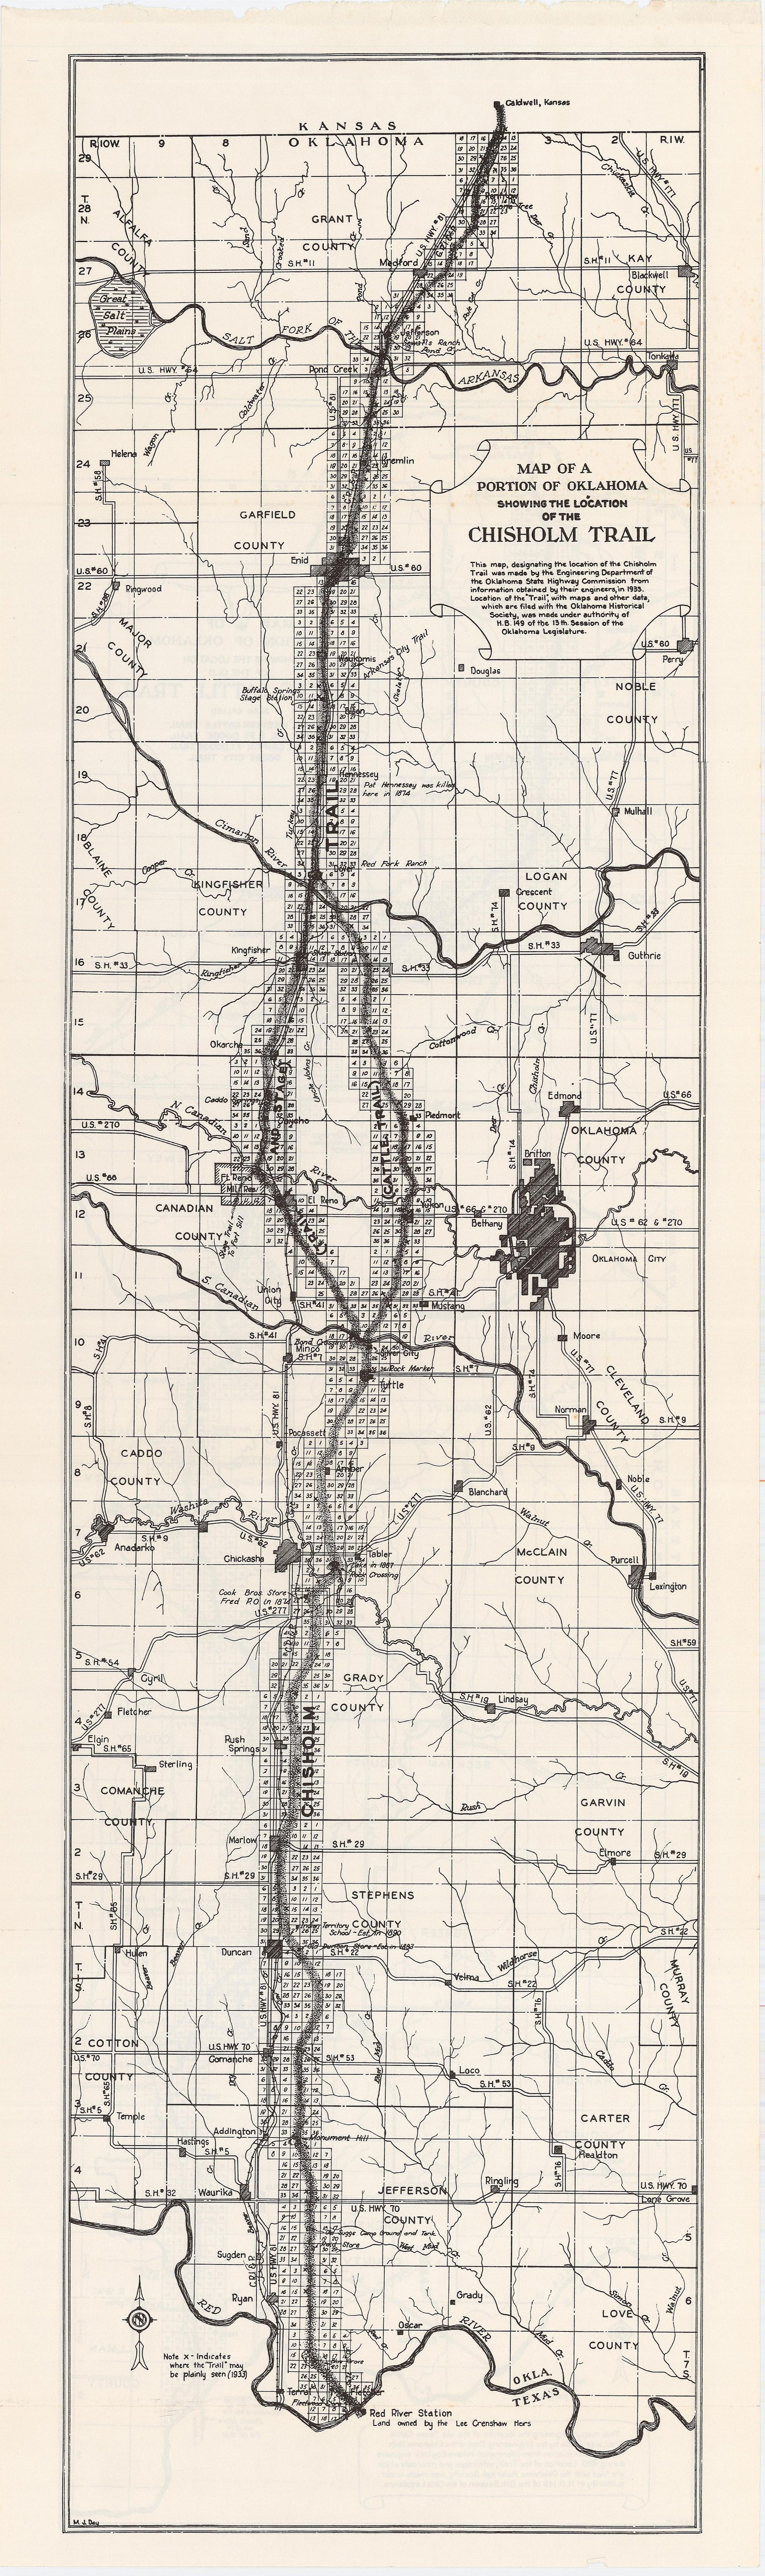 Chisholm Trail The Encyclopedia Of Oklahoma History And Culture